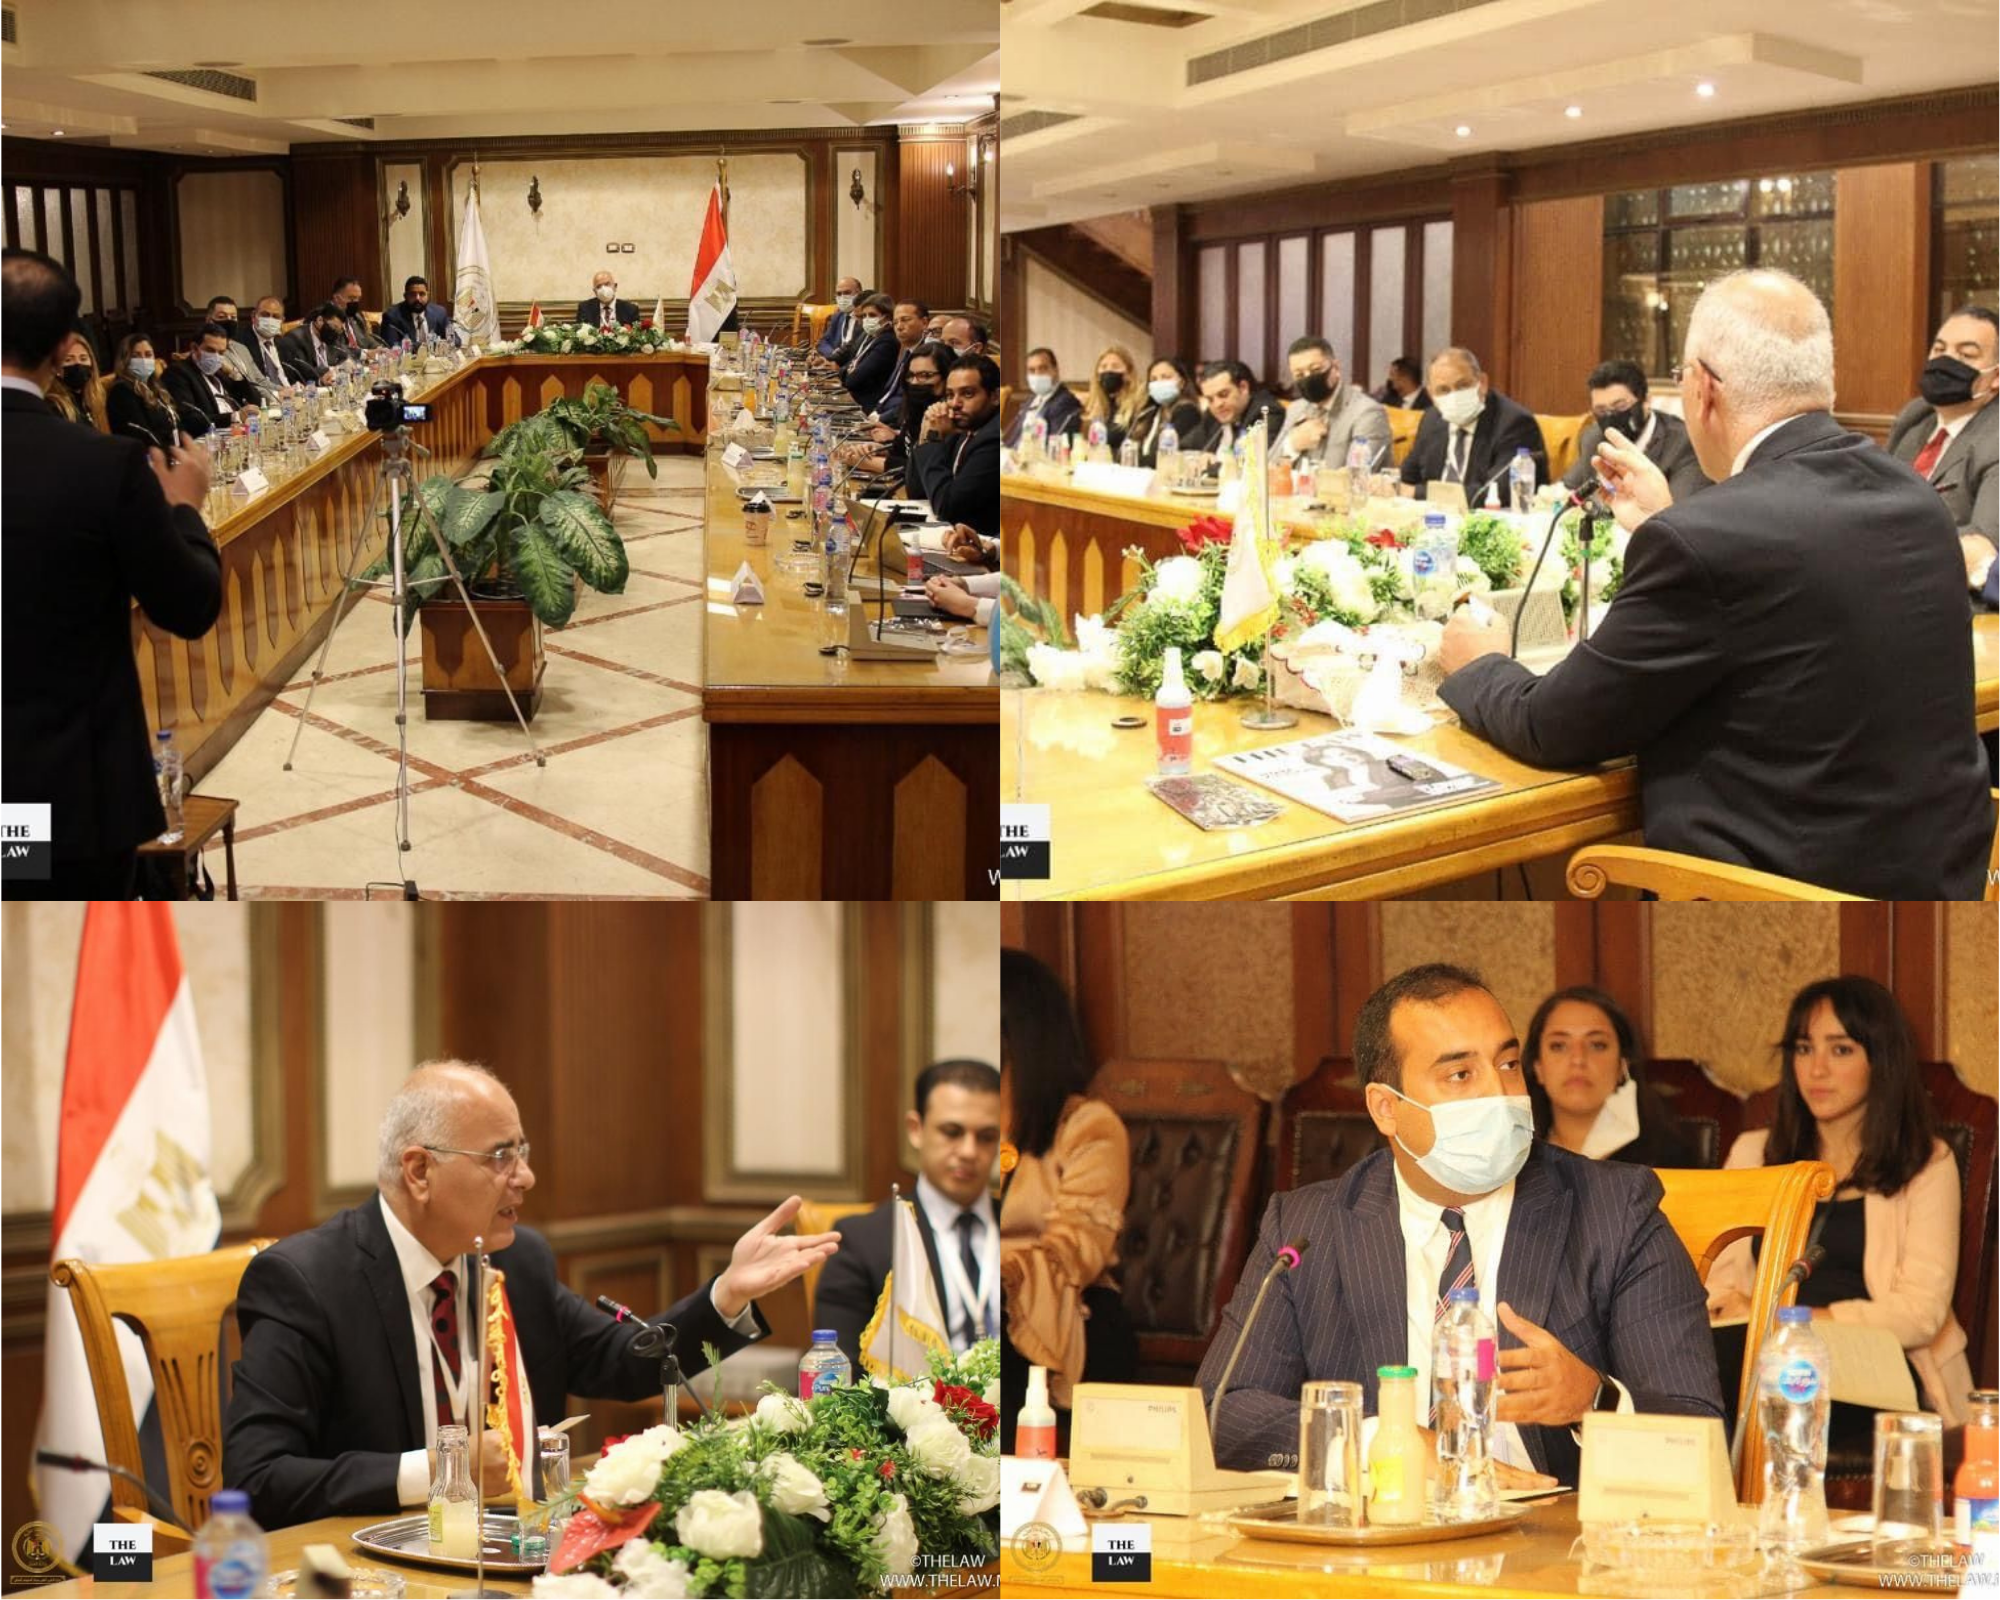 Muhammad Ussama, partner at Shalakany, attended a round-table discussion organized by the Ministry of Justice and The Law regarding the digitalization of judicial proceedings in Egypt.